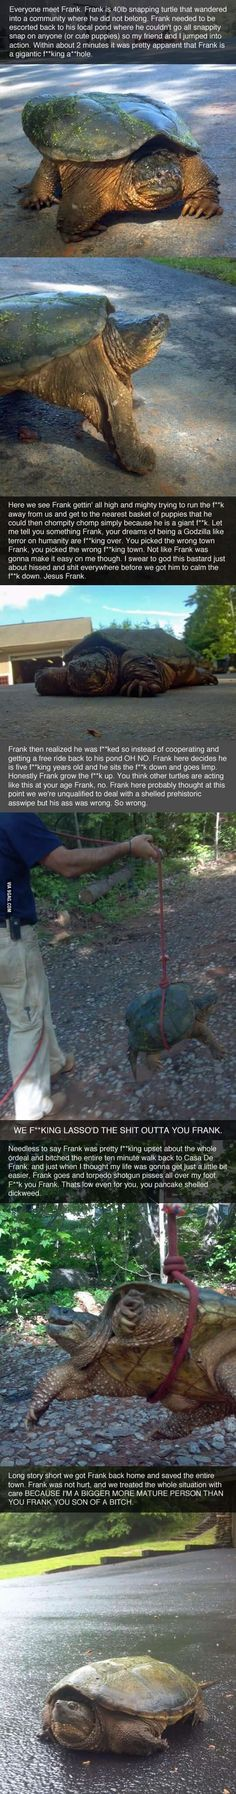 The adventures of Frank the Snapping Turtle